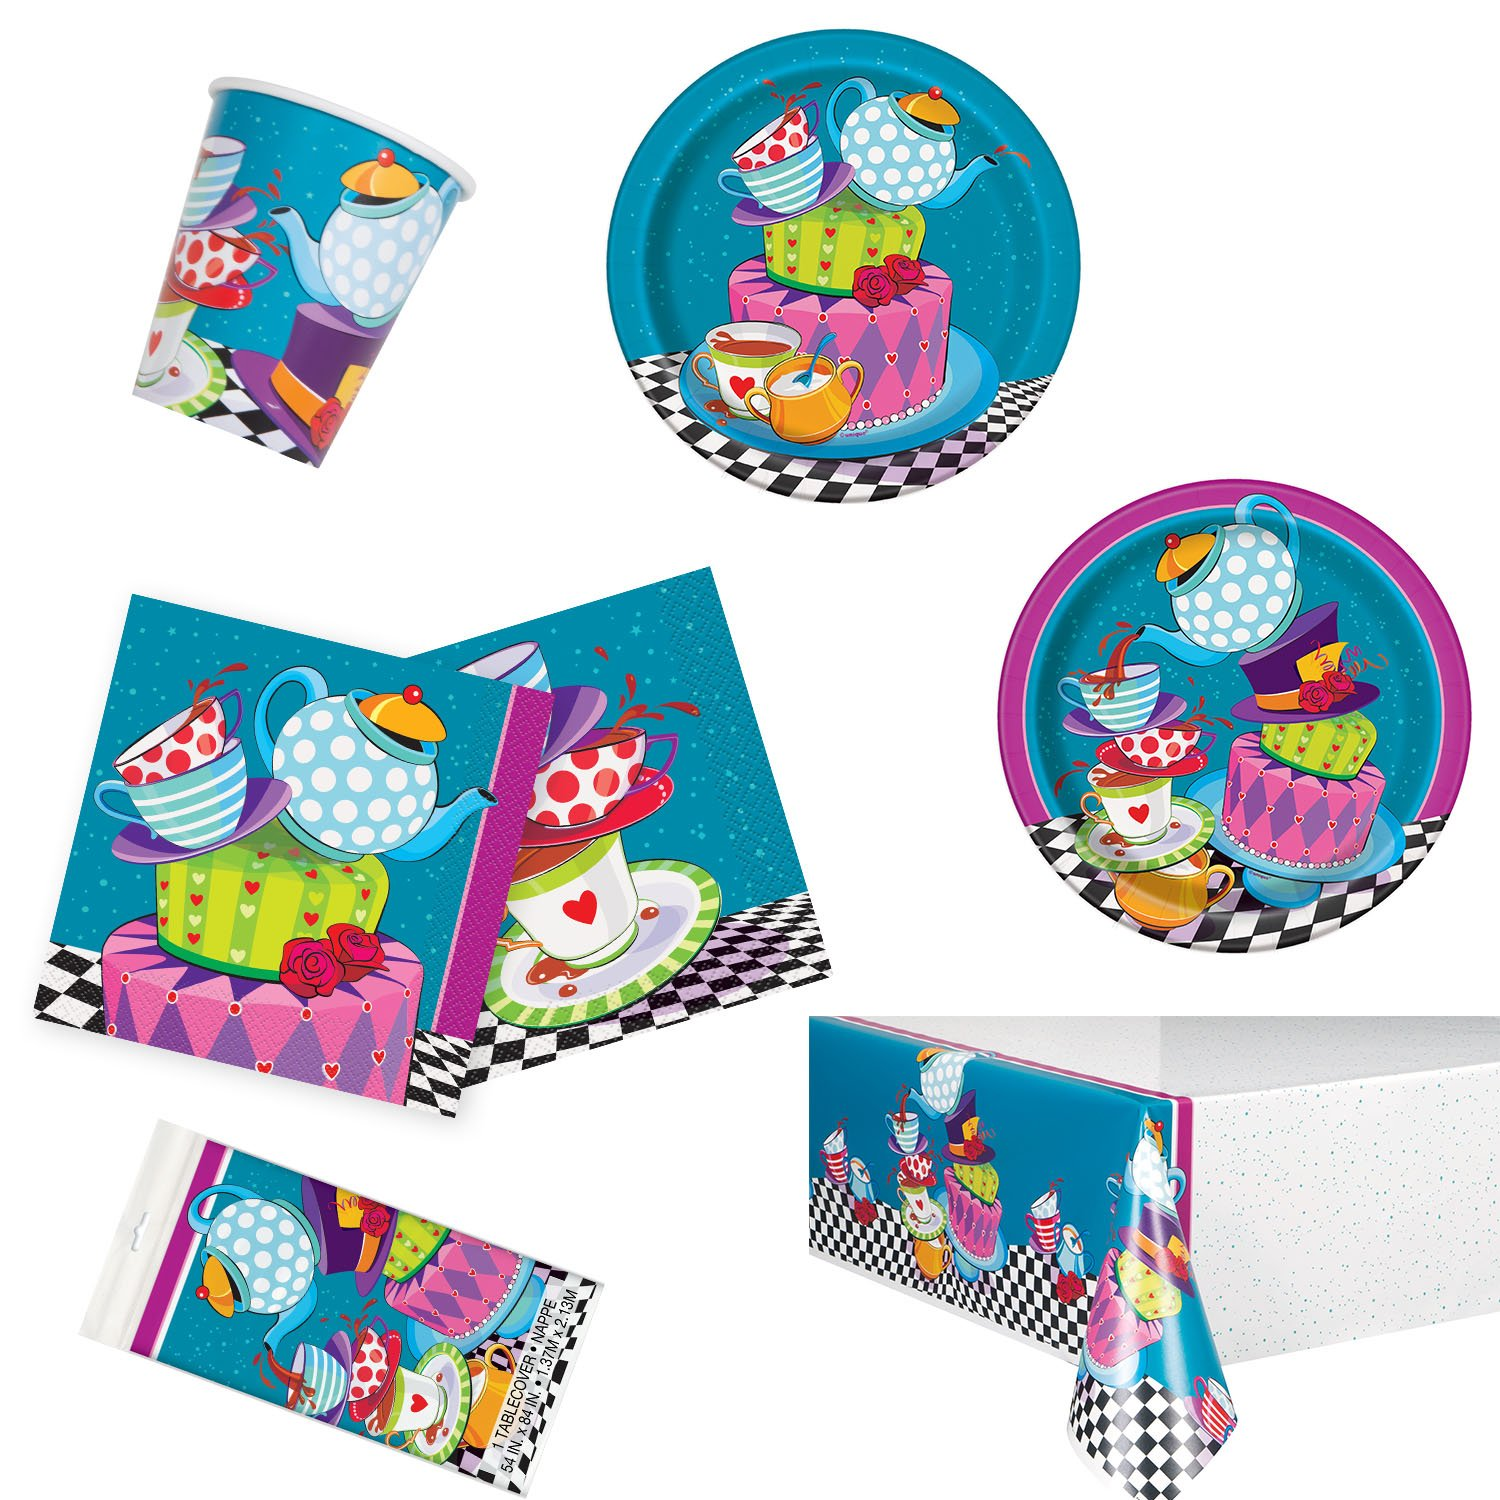 Unique Mad Hatter Tea Party Bundle | Luncheon & Beverage Napkins, Dinner & Dessert Plates, Table Cover, Cups | Great for Birthday Themed Parties